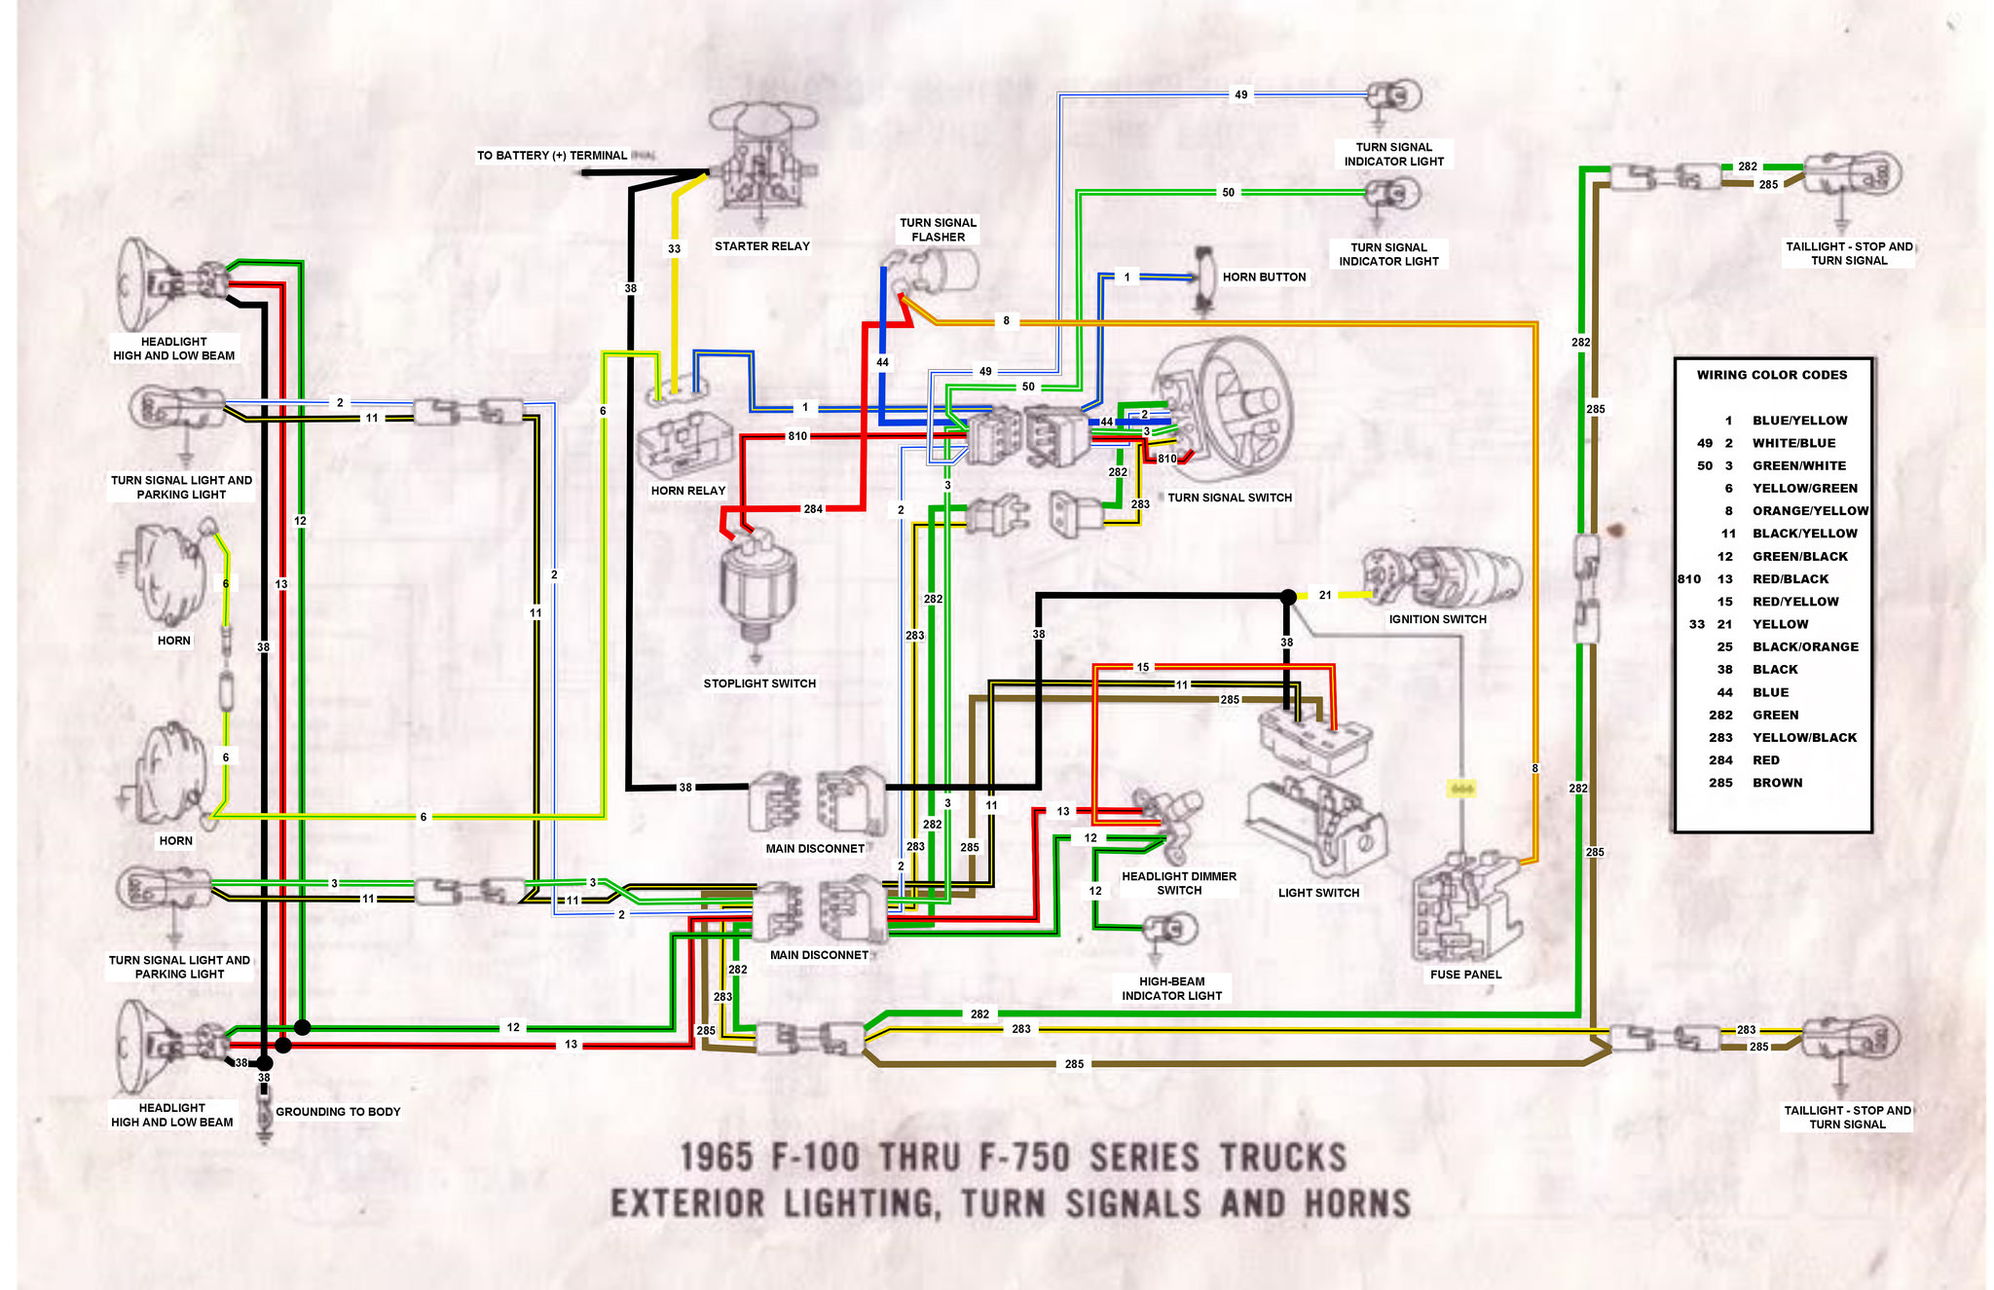 Terrific Free Auto Wiring Diagram 1964 Ford F100 Thru F750 Truck Master Wiring Digital Resources Cettecompassionincorg